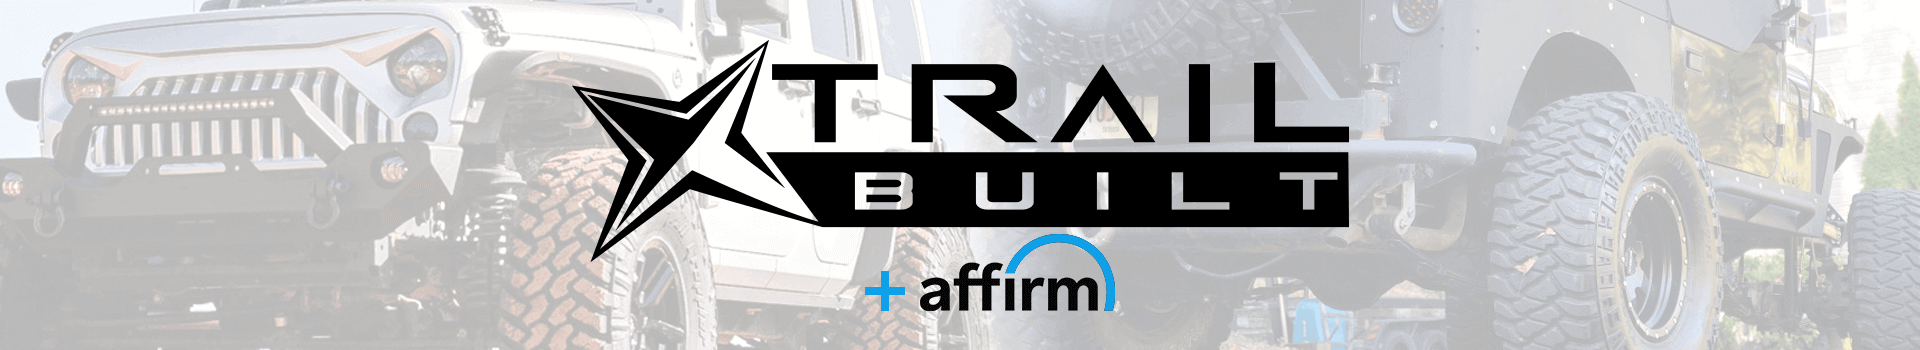 TrailBuilt Off-Road offers financing through Affirm